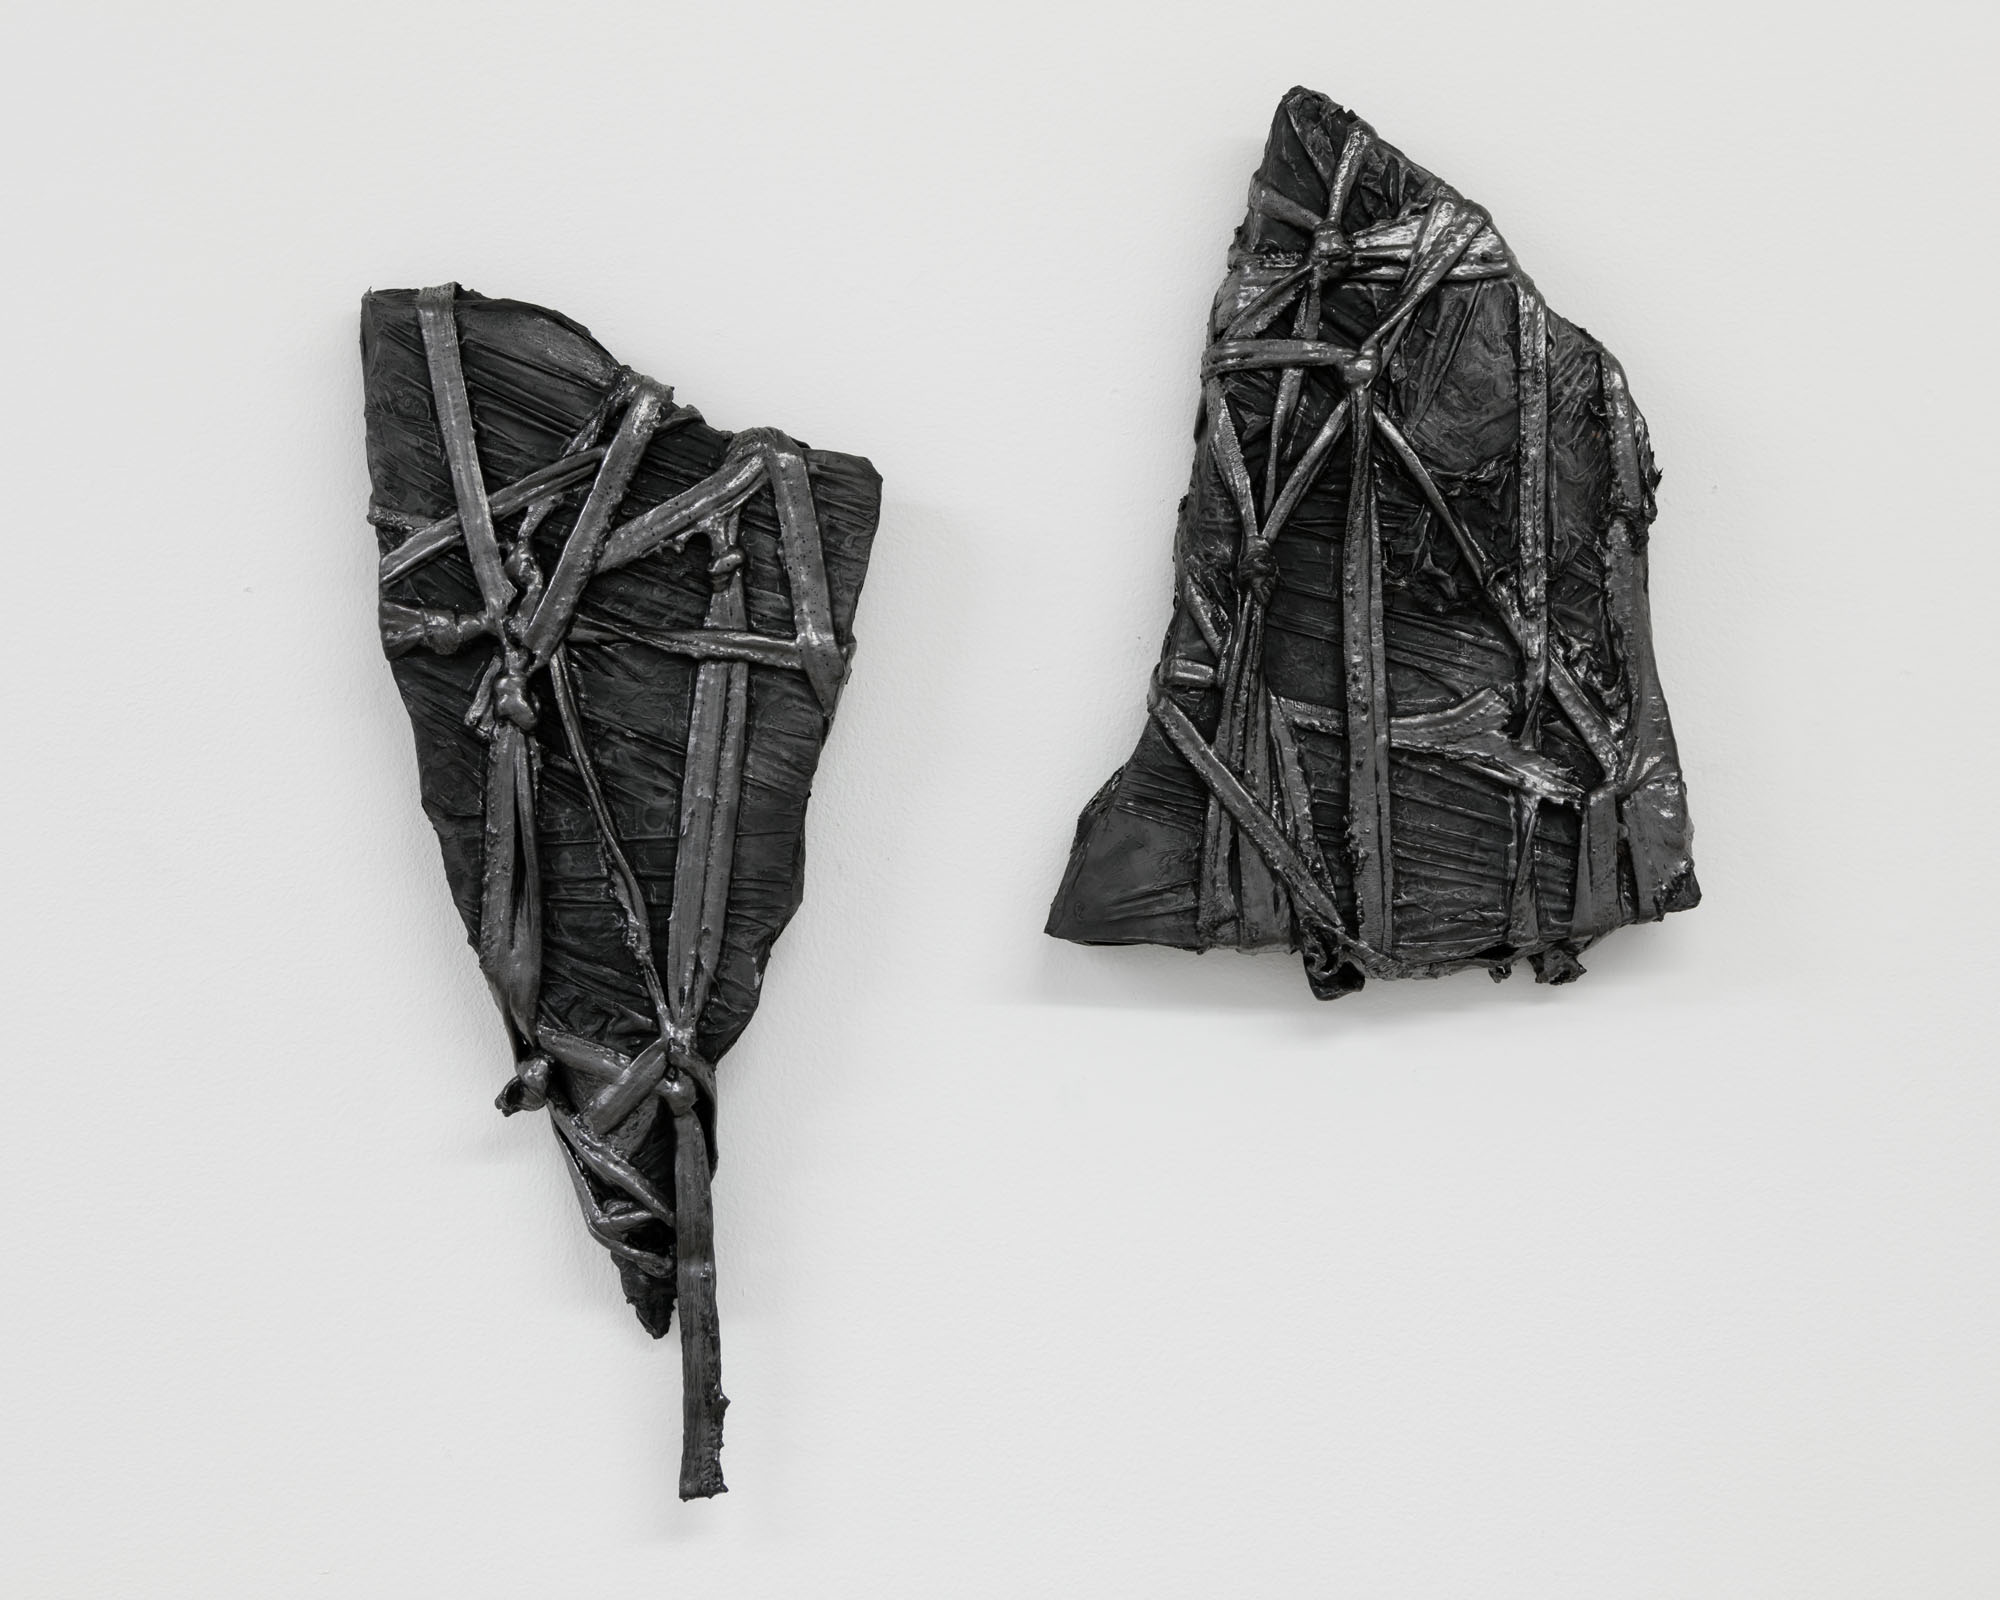 Lauren Seiden  Bound,  2019 Marble, graphite pencil, cotton, and mixed medium 14 x 6 inches (35.56 x 15.24 cm)